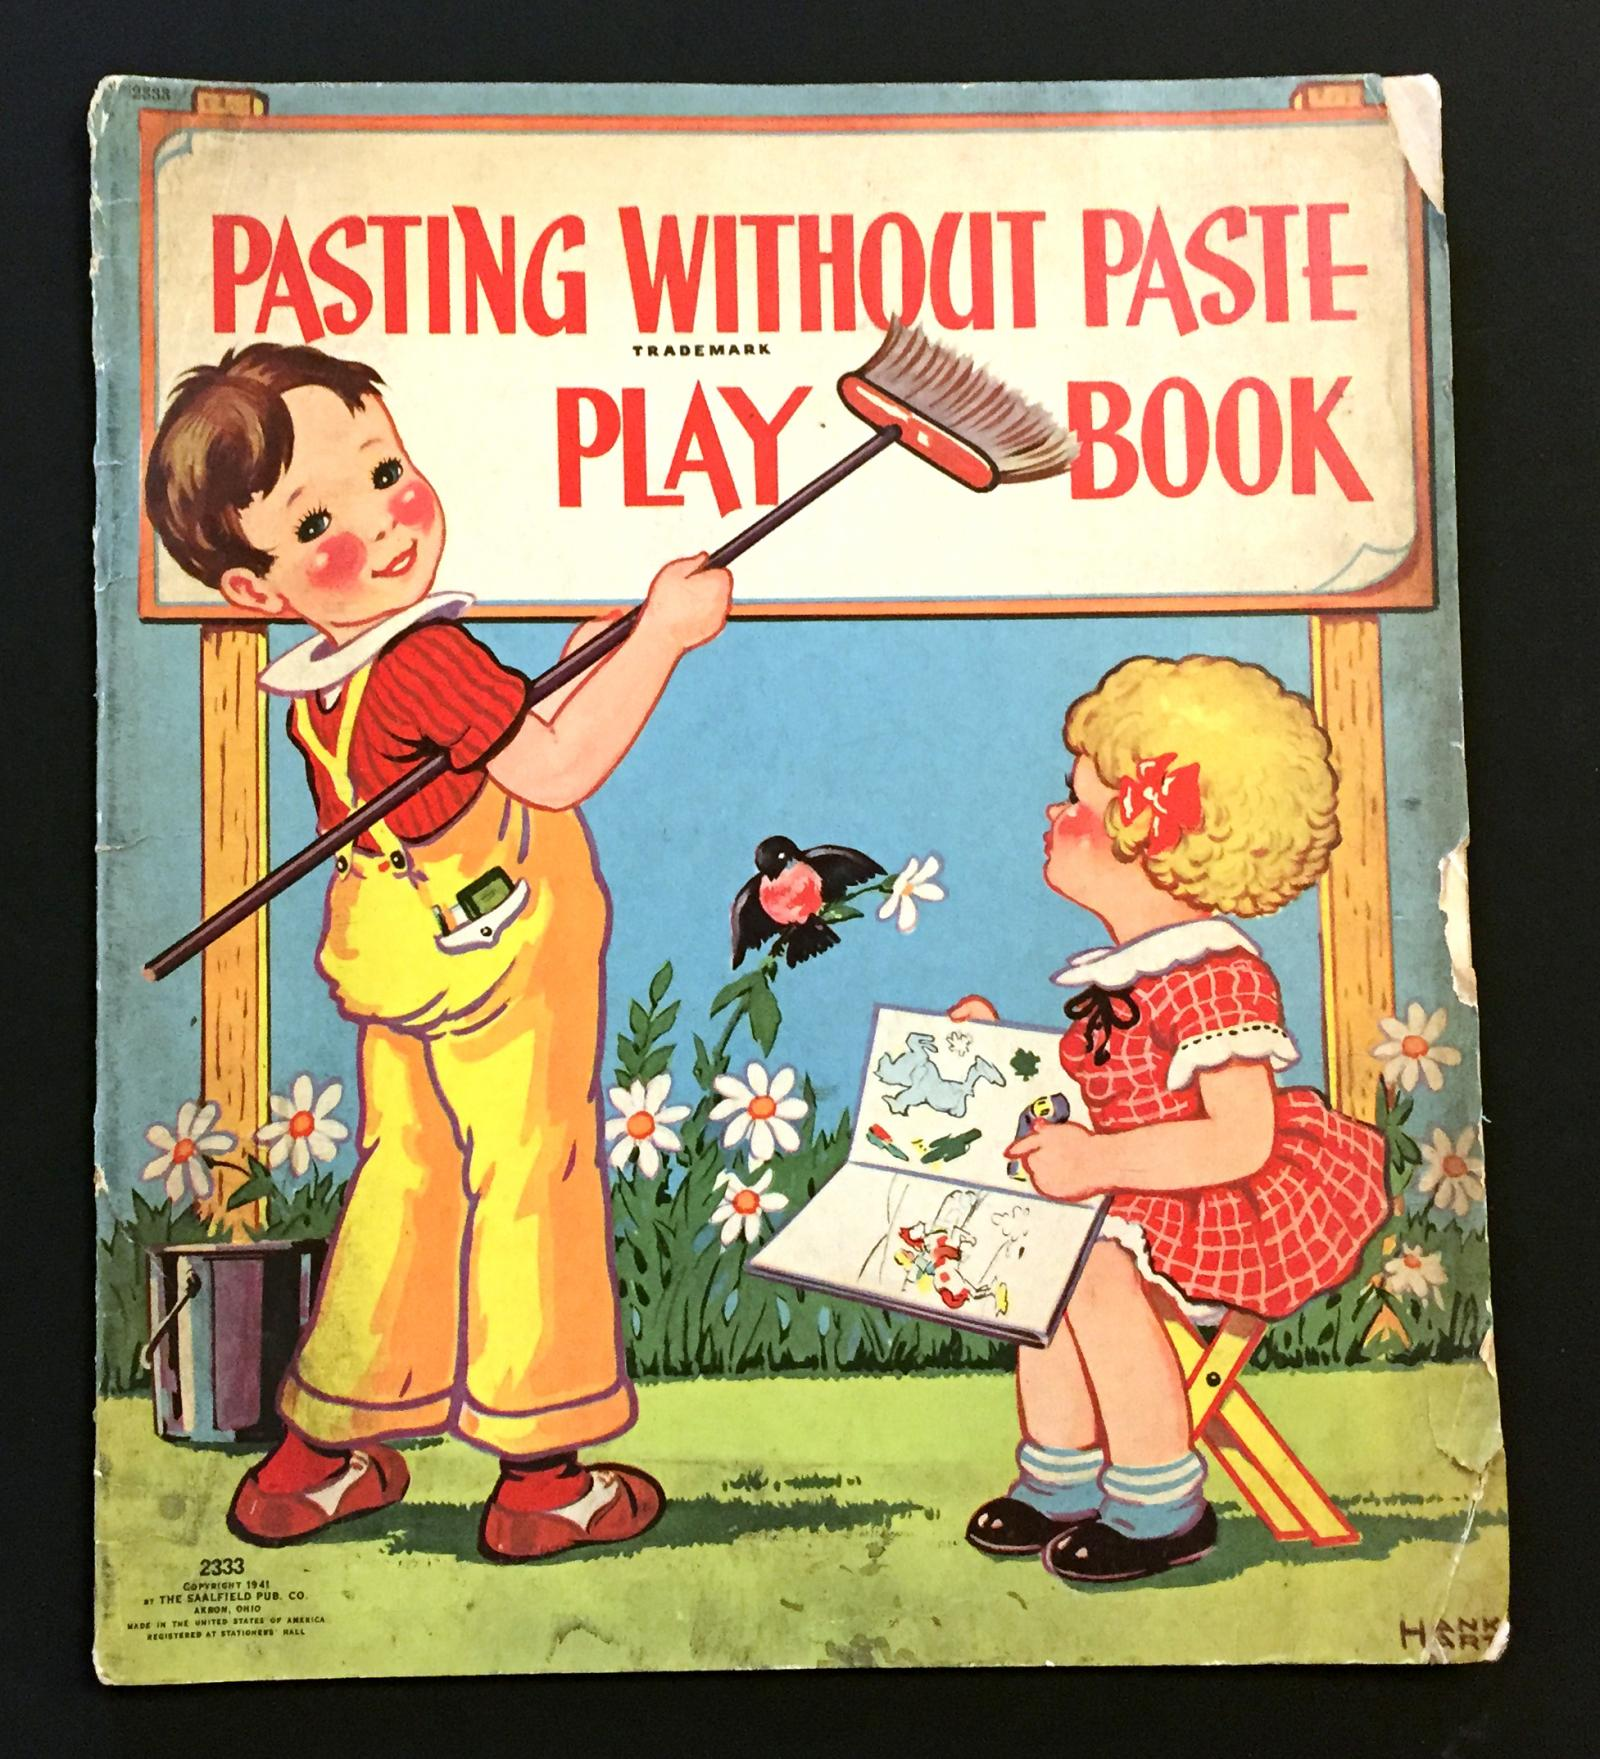 A sticker books from the 1930s, by Hank Hart